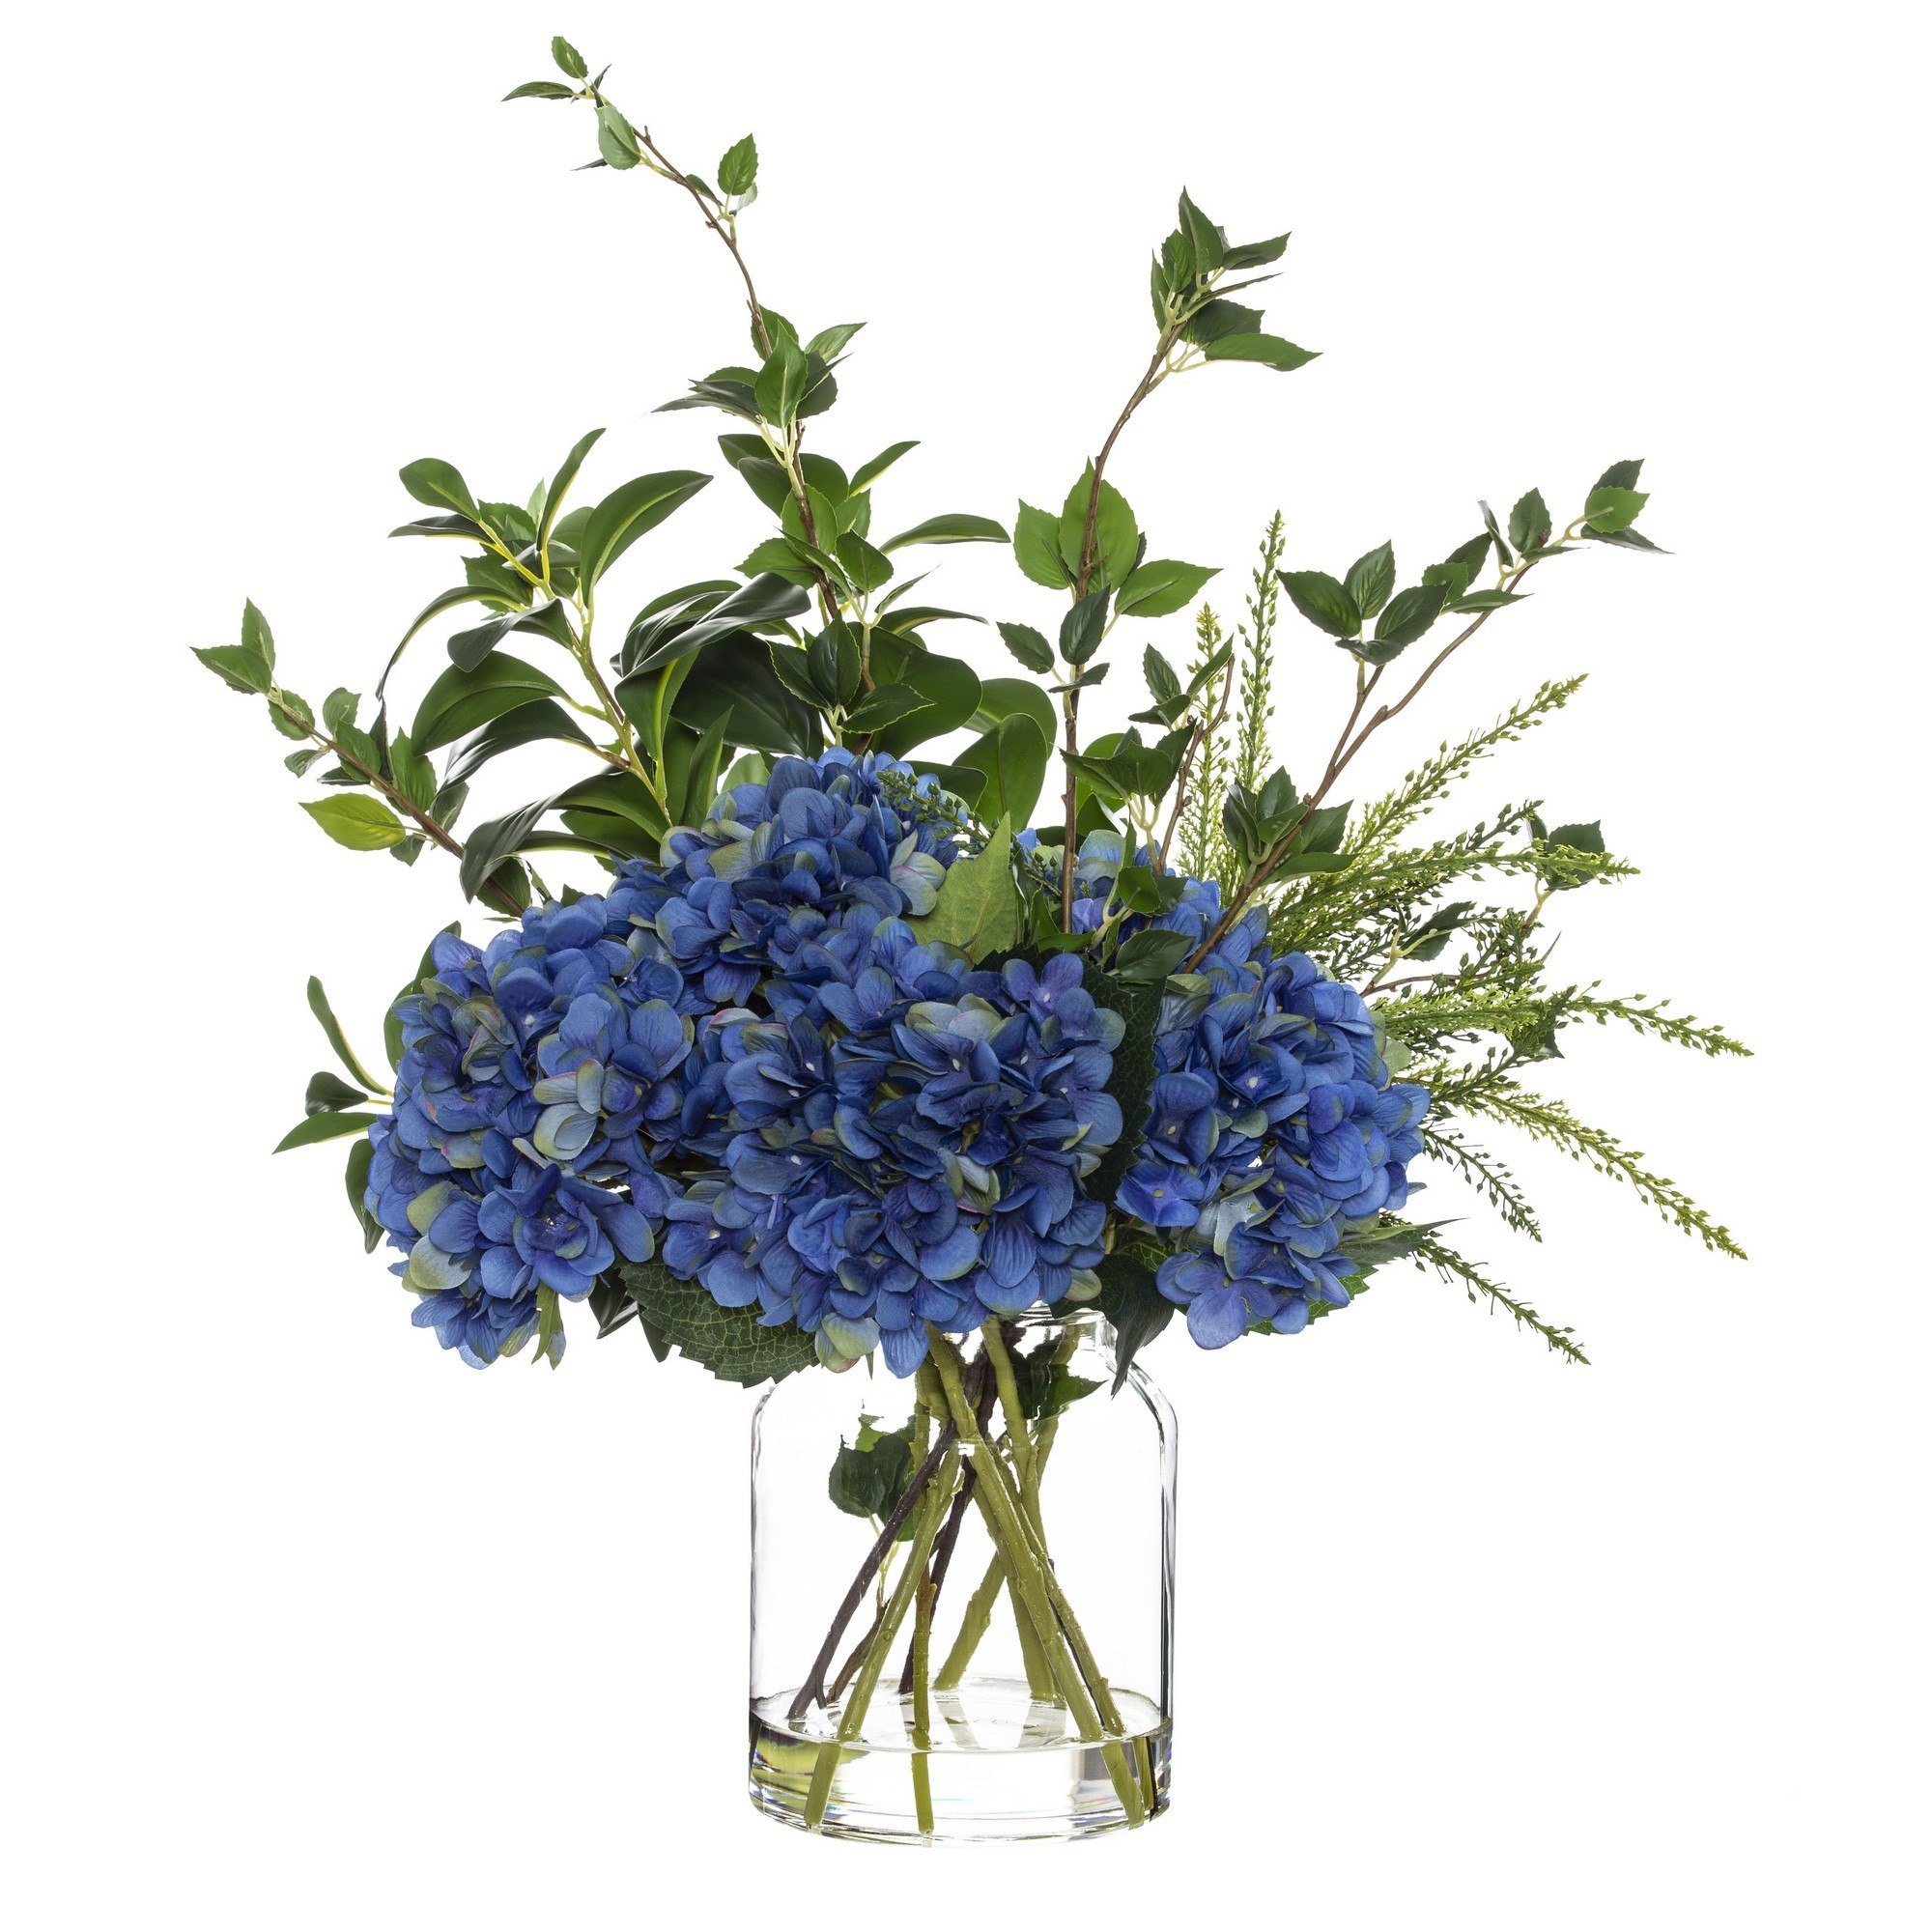 Artificial Hydrangea Mix in Glass Jar, Blue Flower